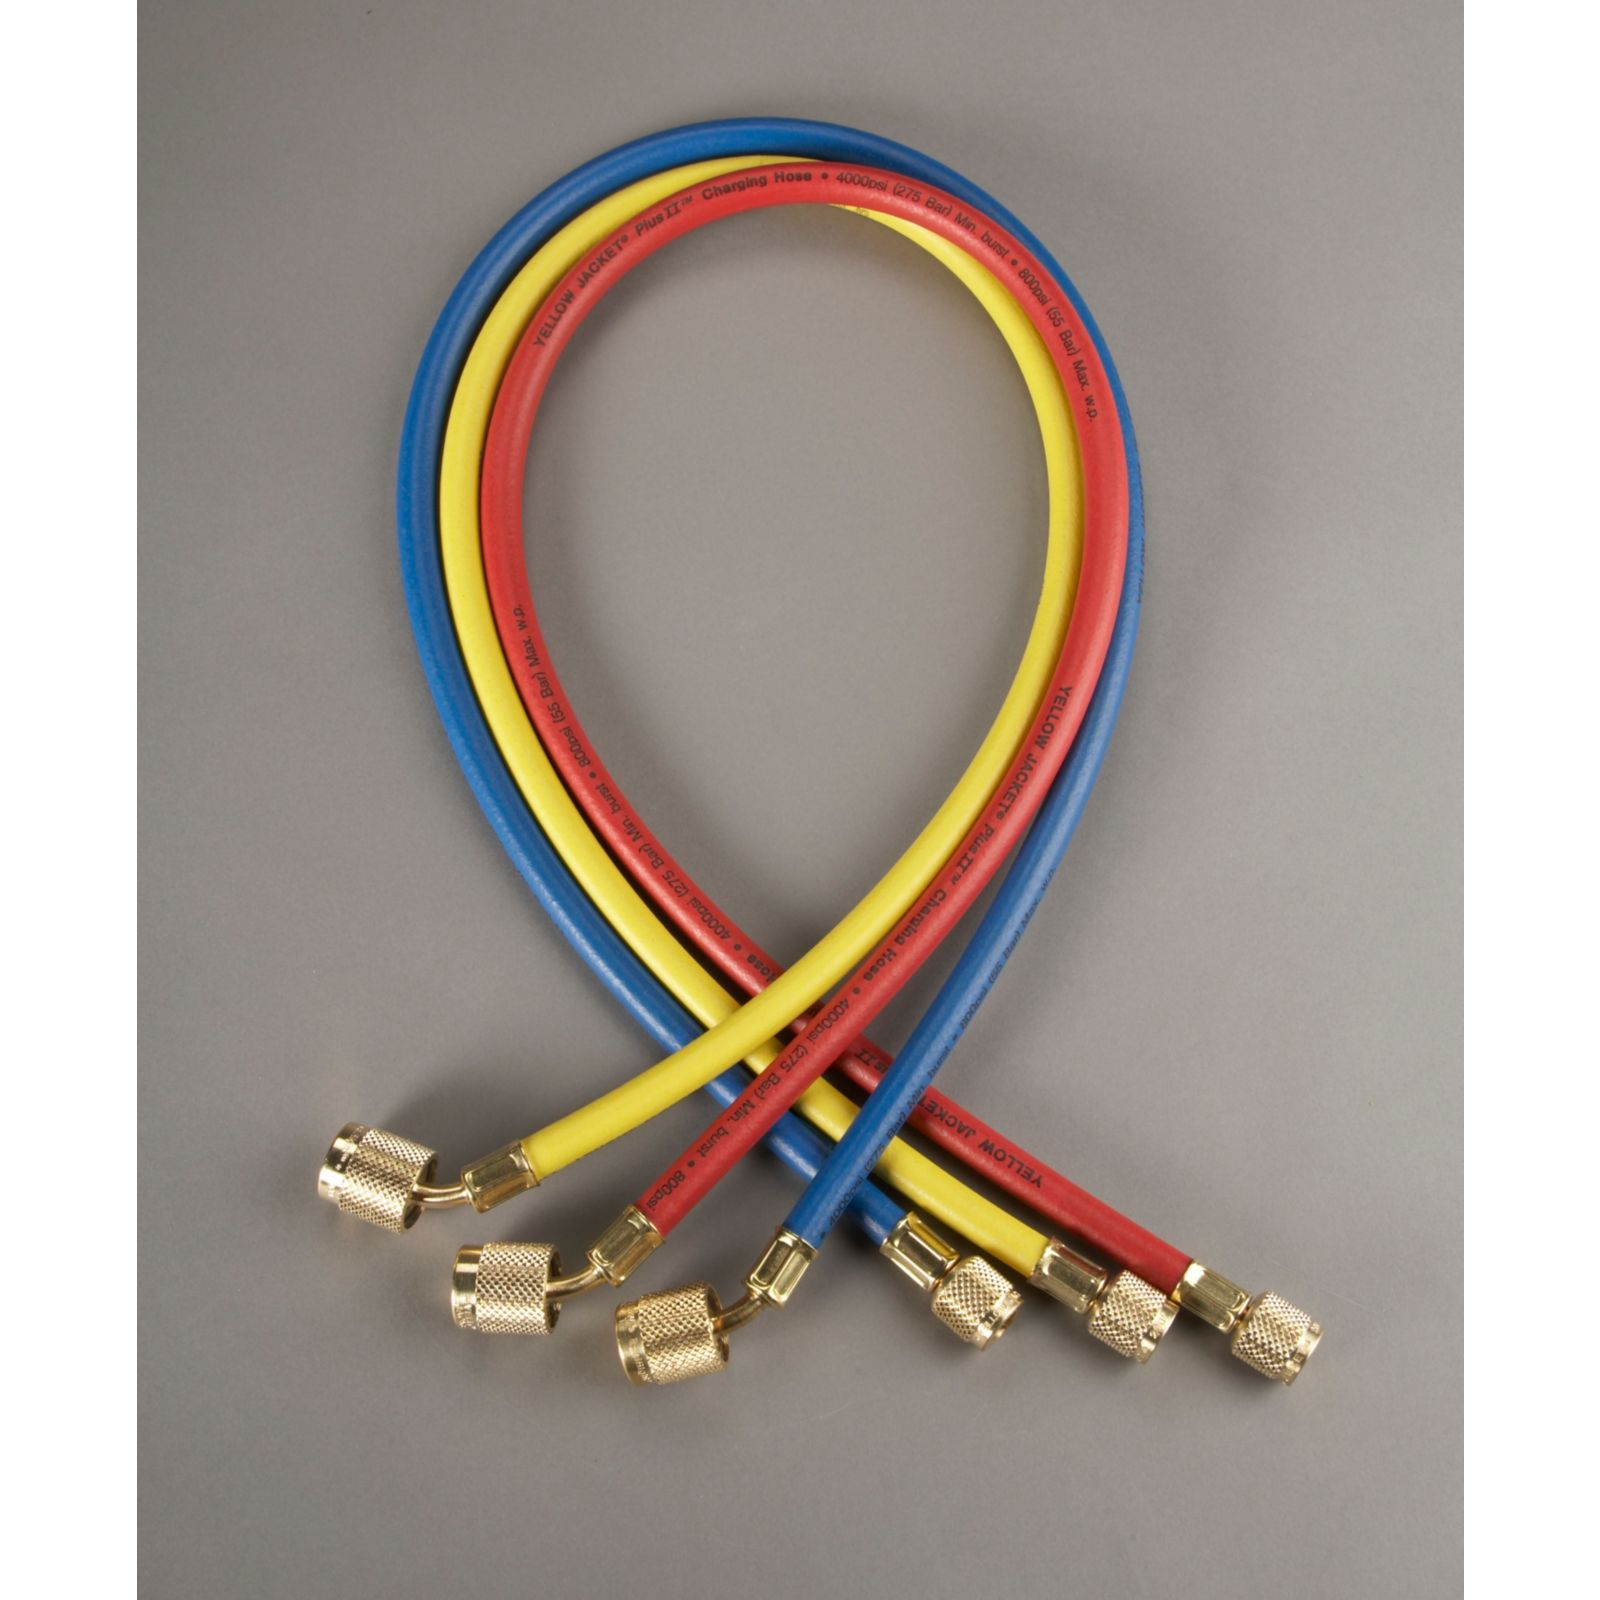 "Yellow Jacket 22984 - Plus II Red, Yellow & Blue Hose with SealRight Low Loss Anti-Blow Back Fitting 1/4"" X 4' (3 pack)"